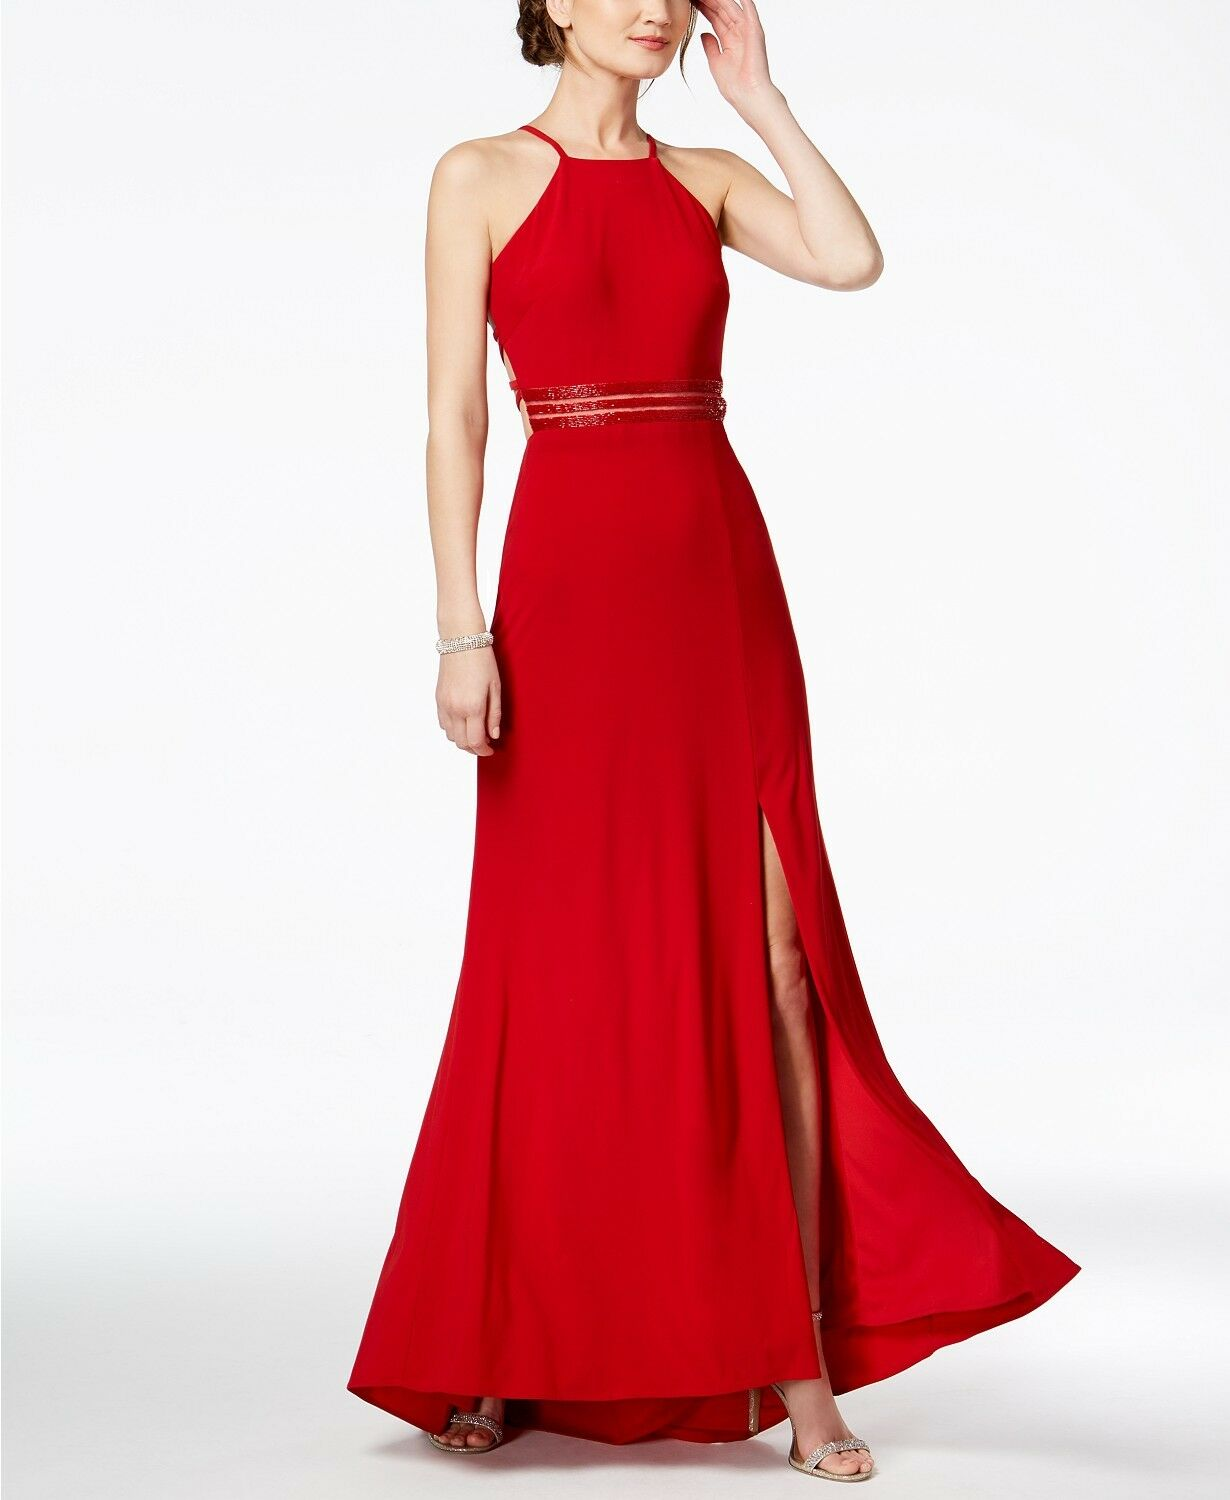 NIGHTWAY WOMEN'S RED STRAPPY BEADED A-LINE HALTER GOWN DRESS SIZE 10